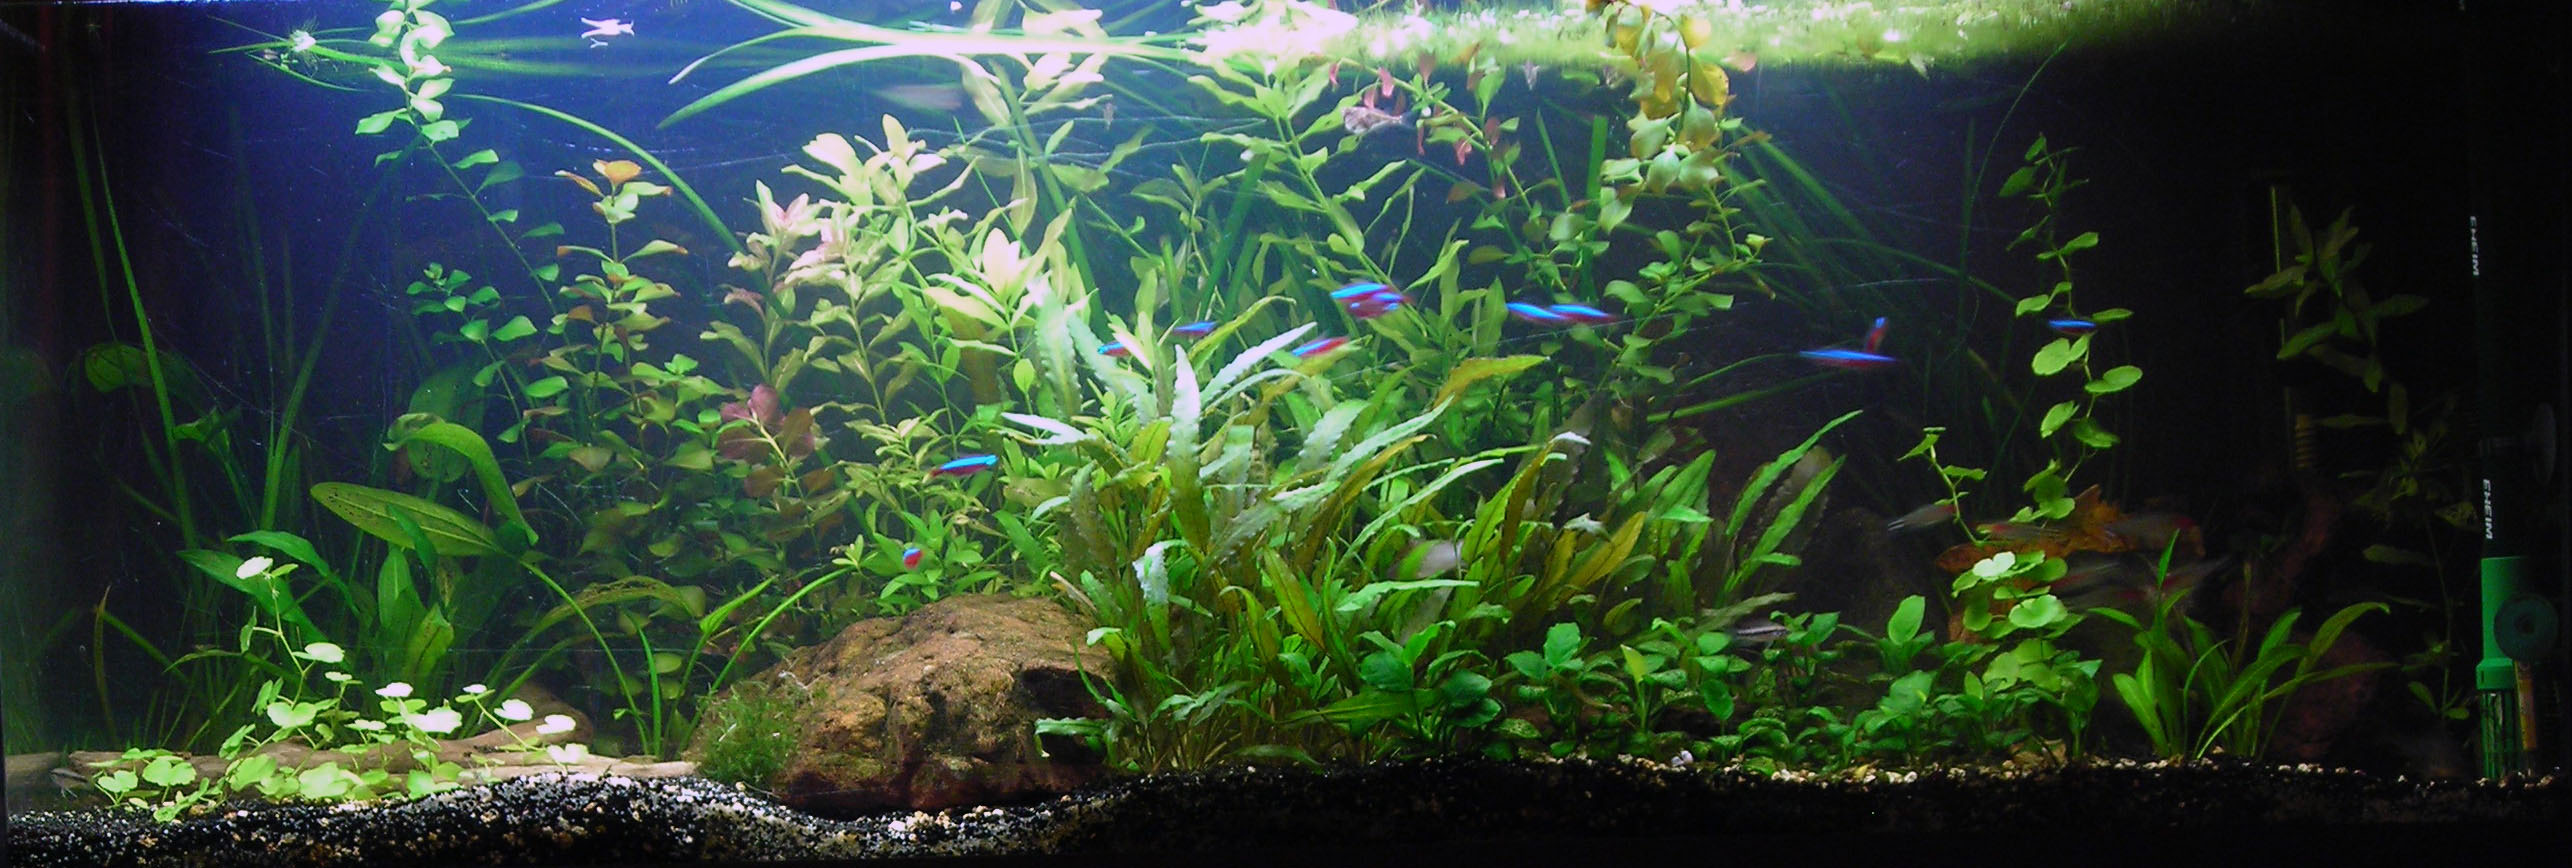 photo https://www.aquariophilie.org/aquarium/images/aq27ph16.jpg